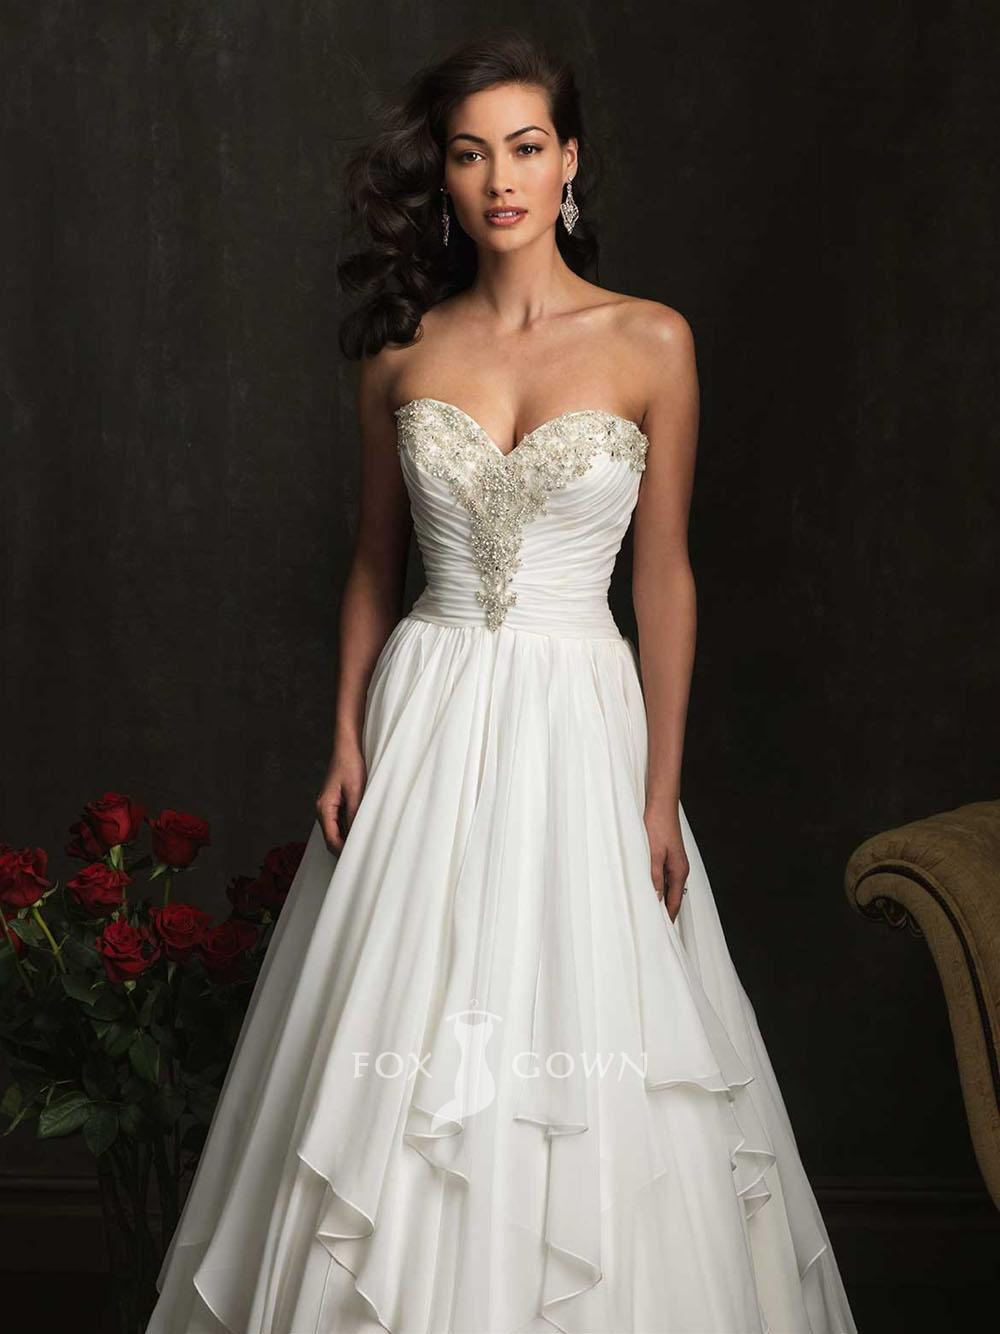 Wedding dresses canada wedding dresses asian for Loose fitting wedding dresses